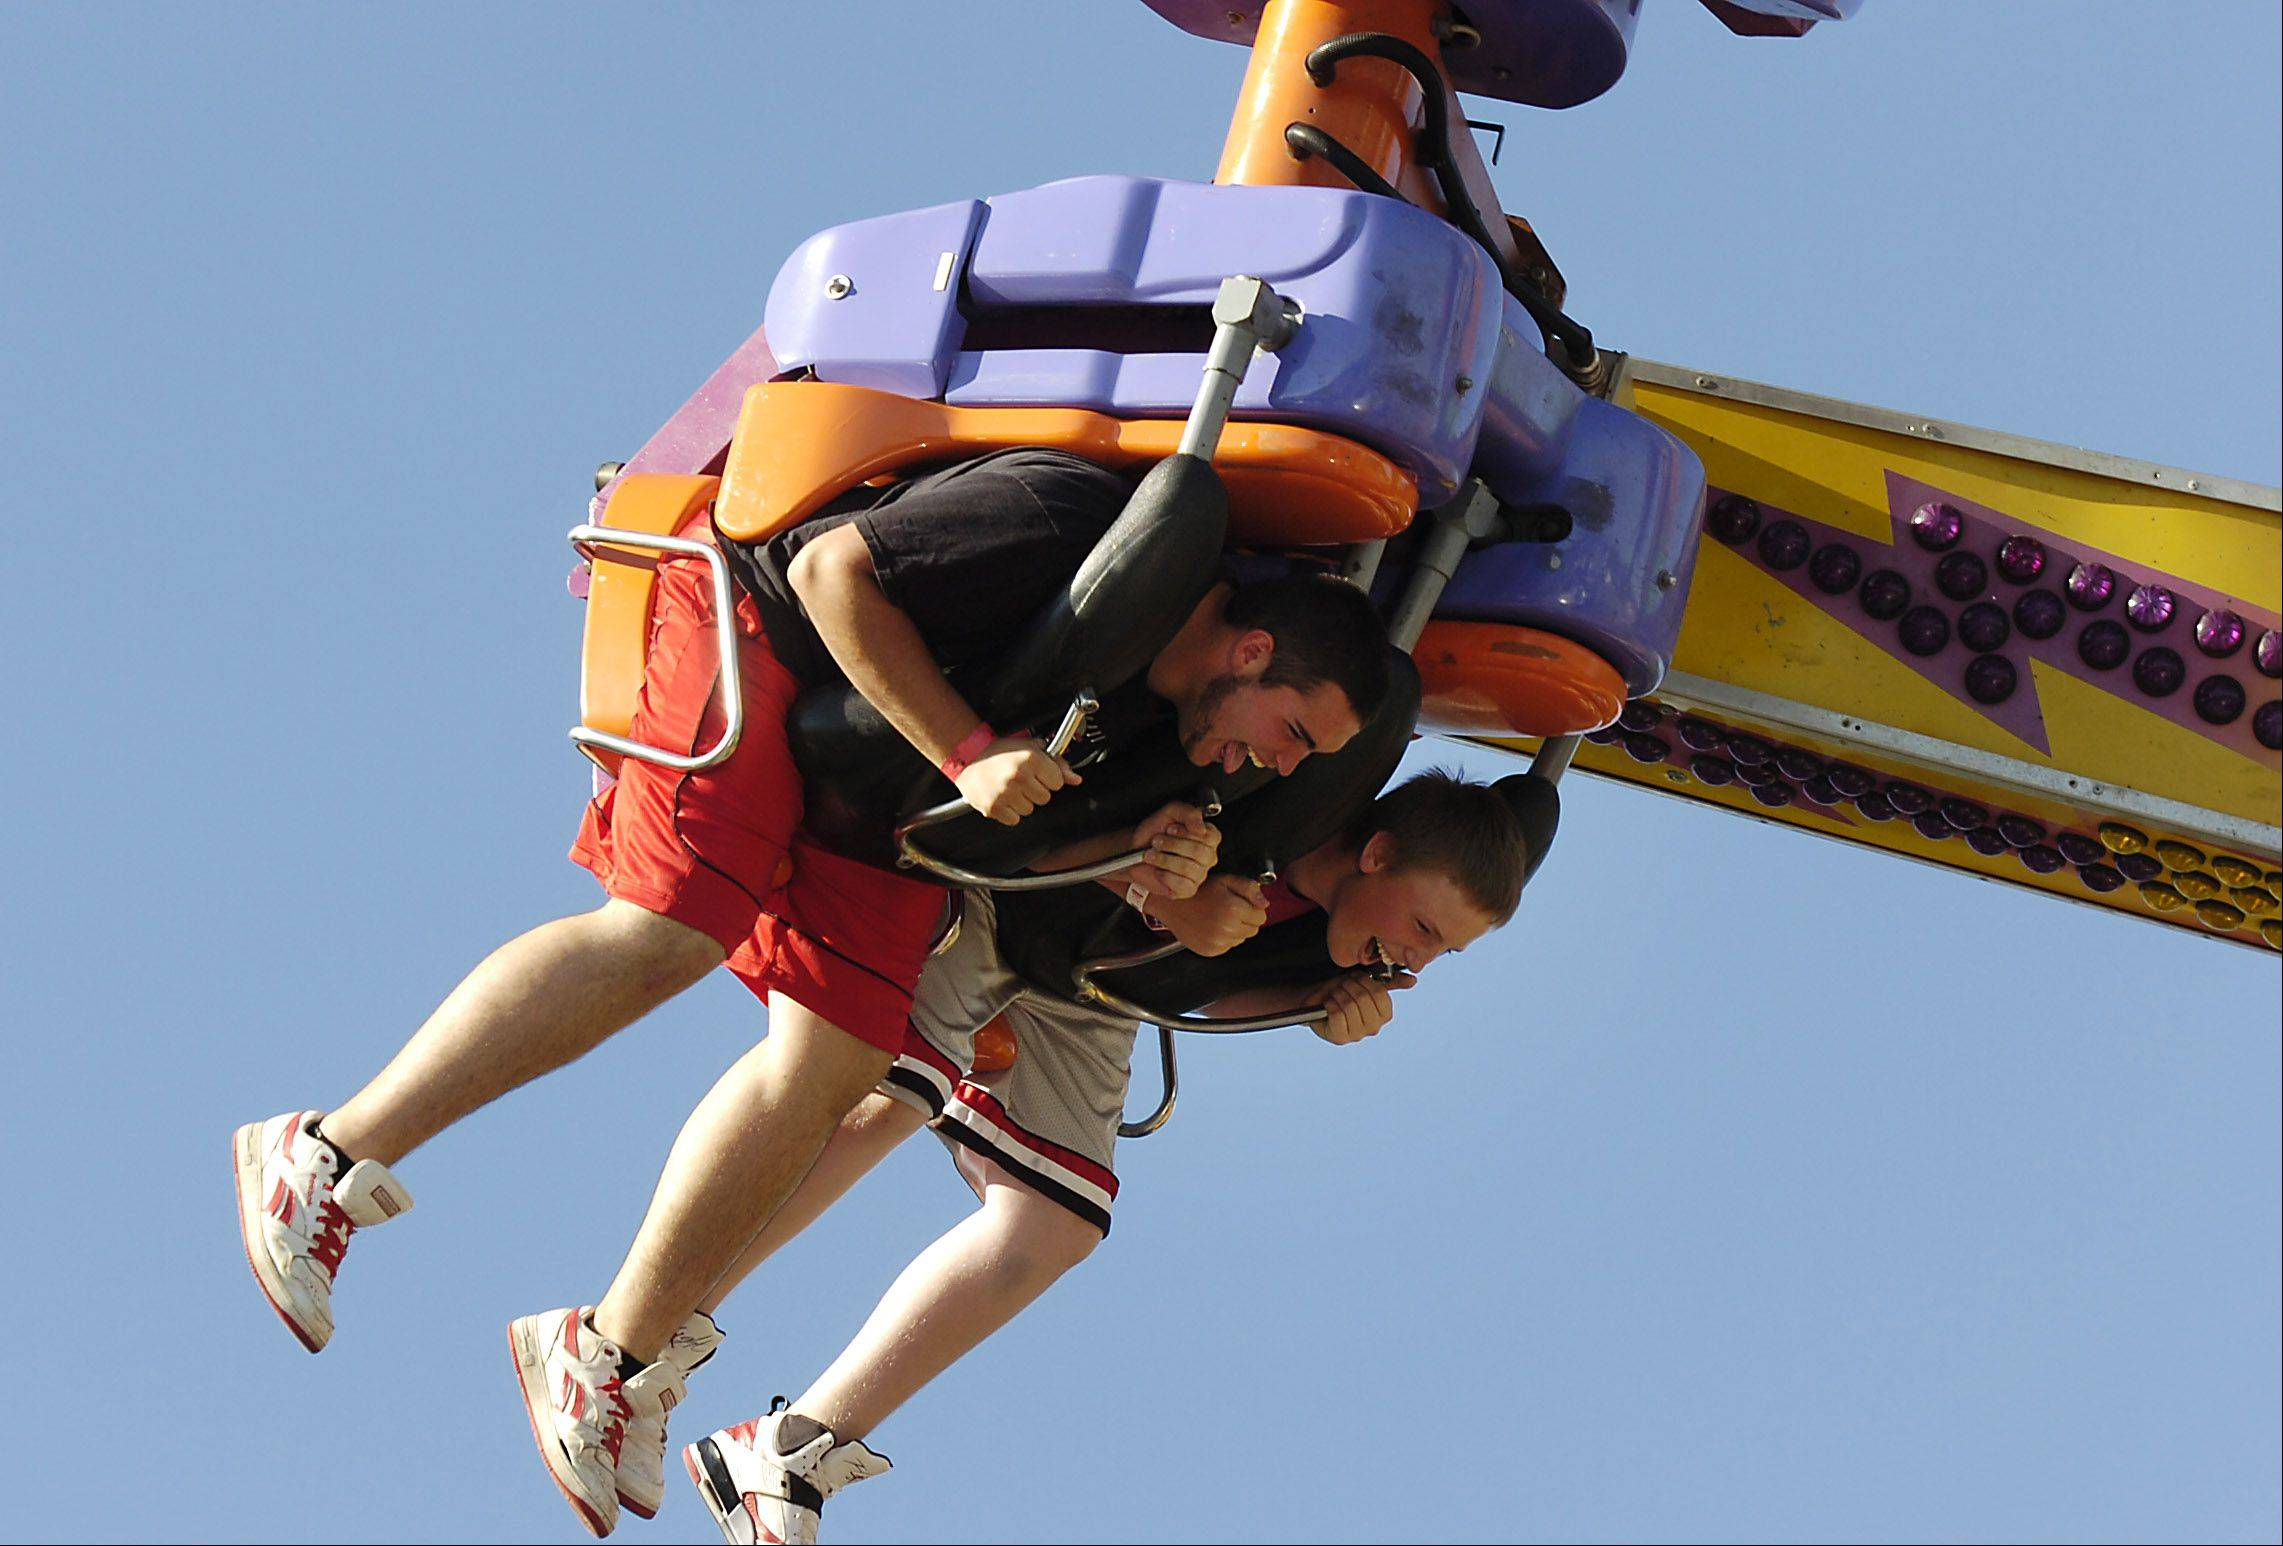 Guests can spin, twist and soar on carnival rides at the annual Arlington Heights Frontier Days this weekend.